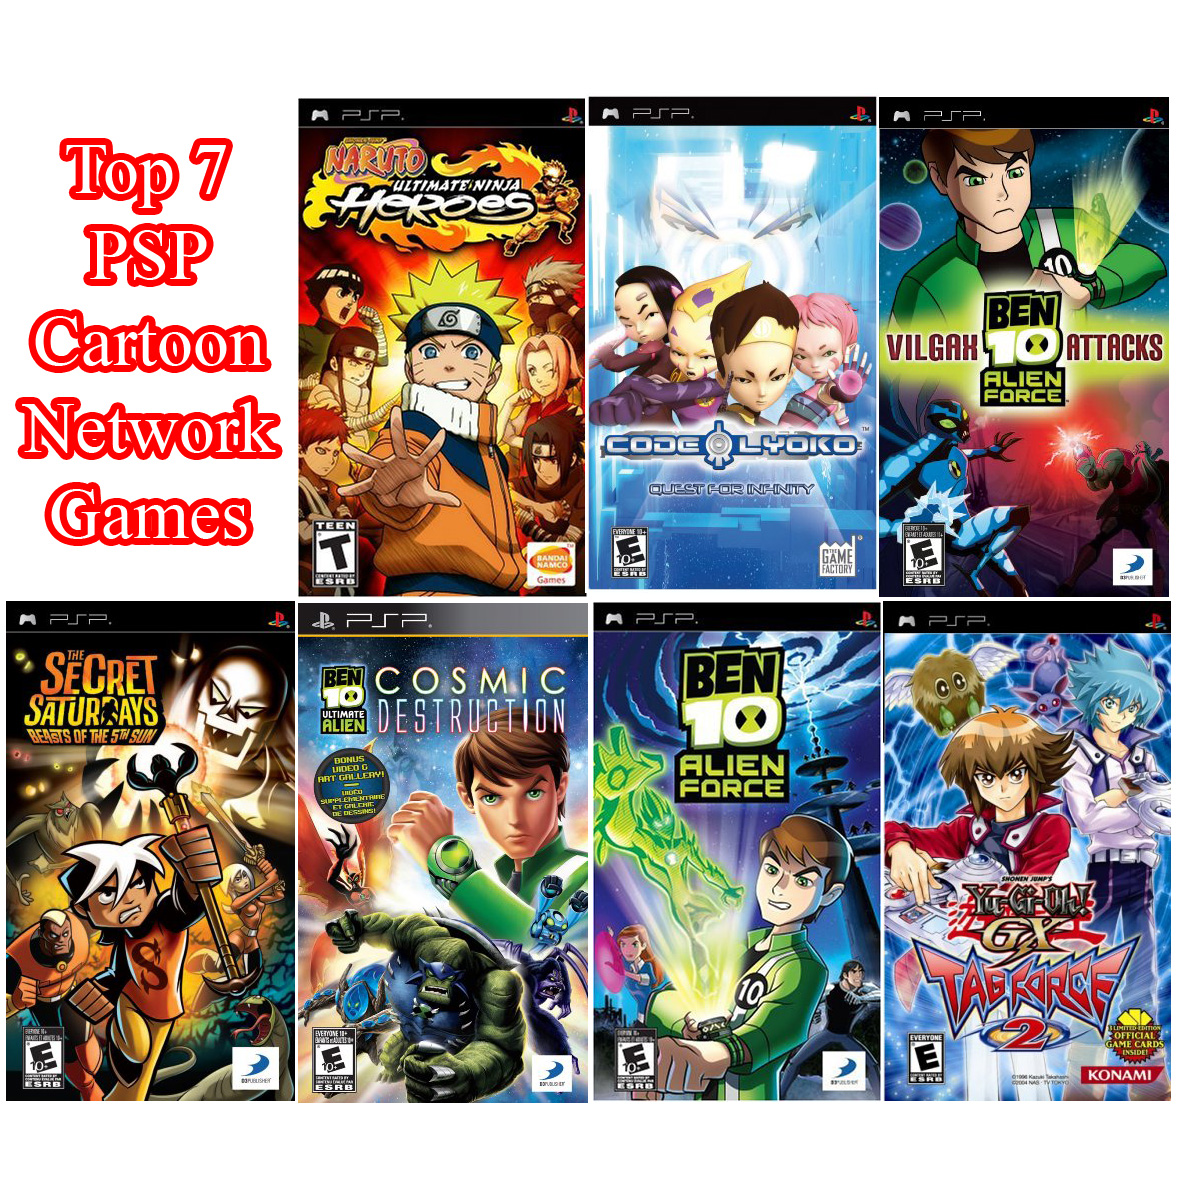 The Best Game Collections: Top 7 PSP Cartoon Network Games